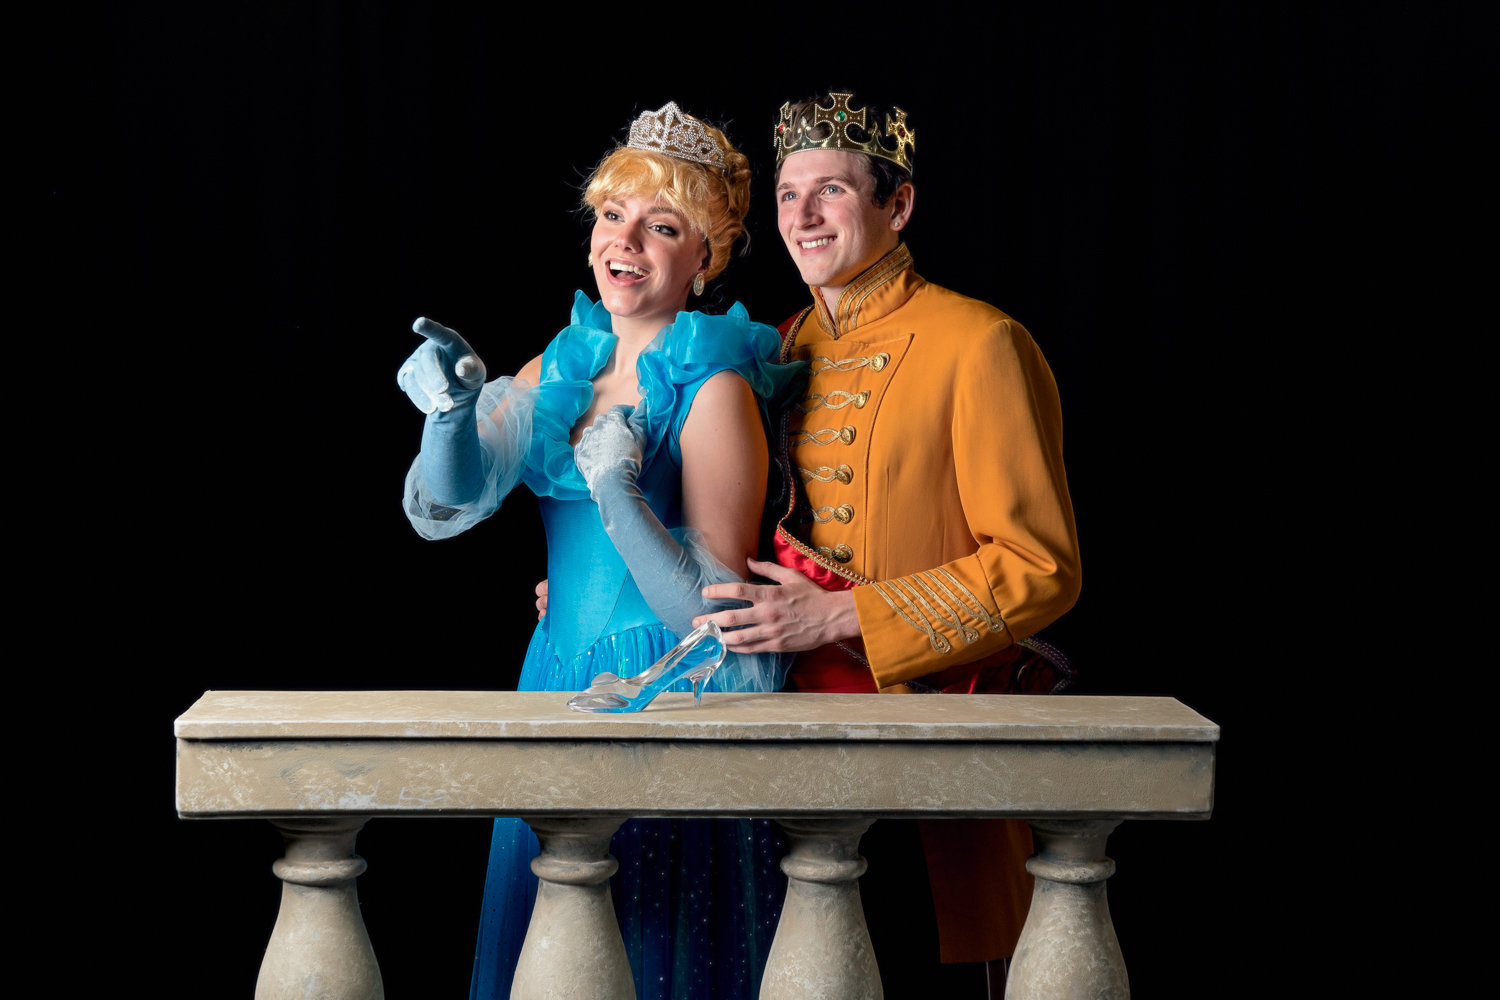 See Cinderella charm the Prince at the Royal Ball when Plaza Theatrical Productions stages the classic fairy tale at local parks and indoors.